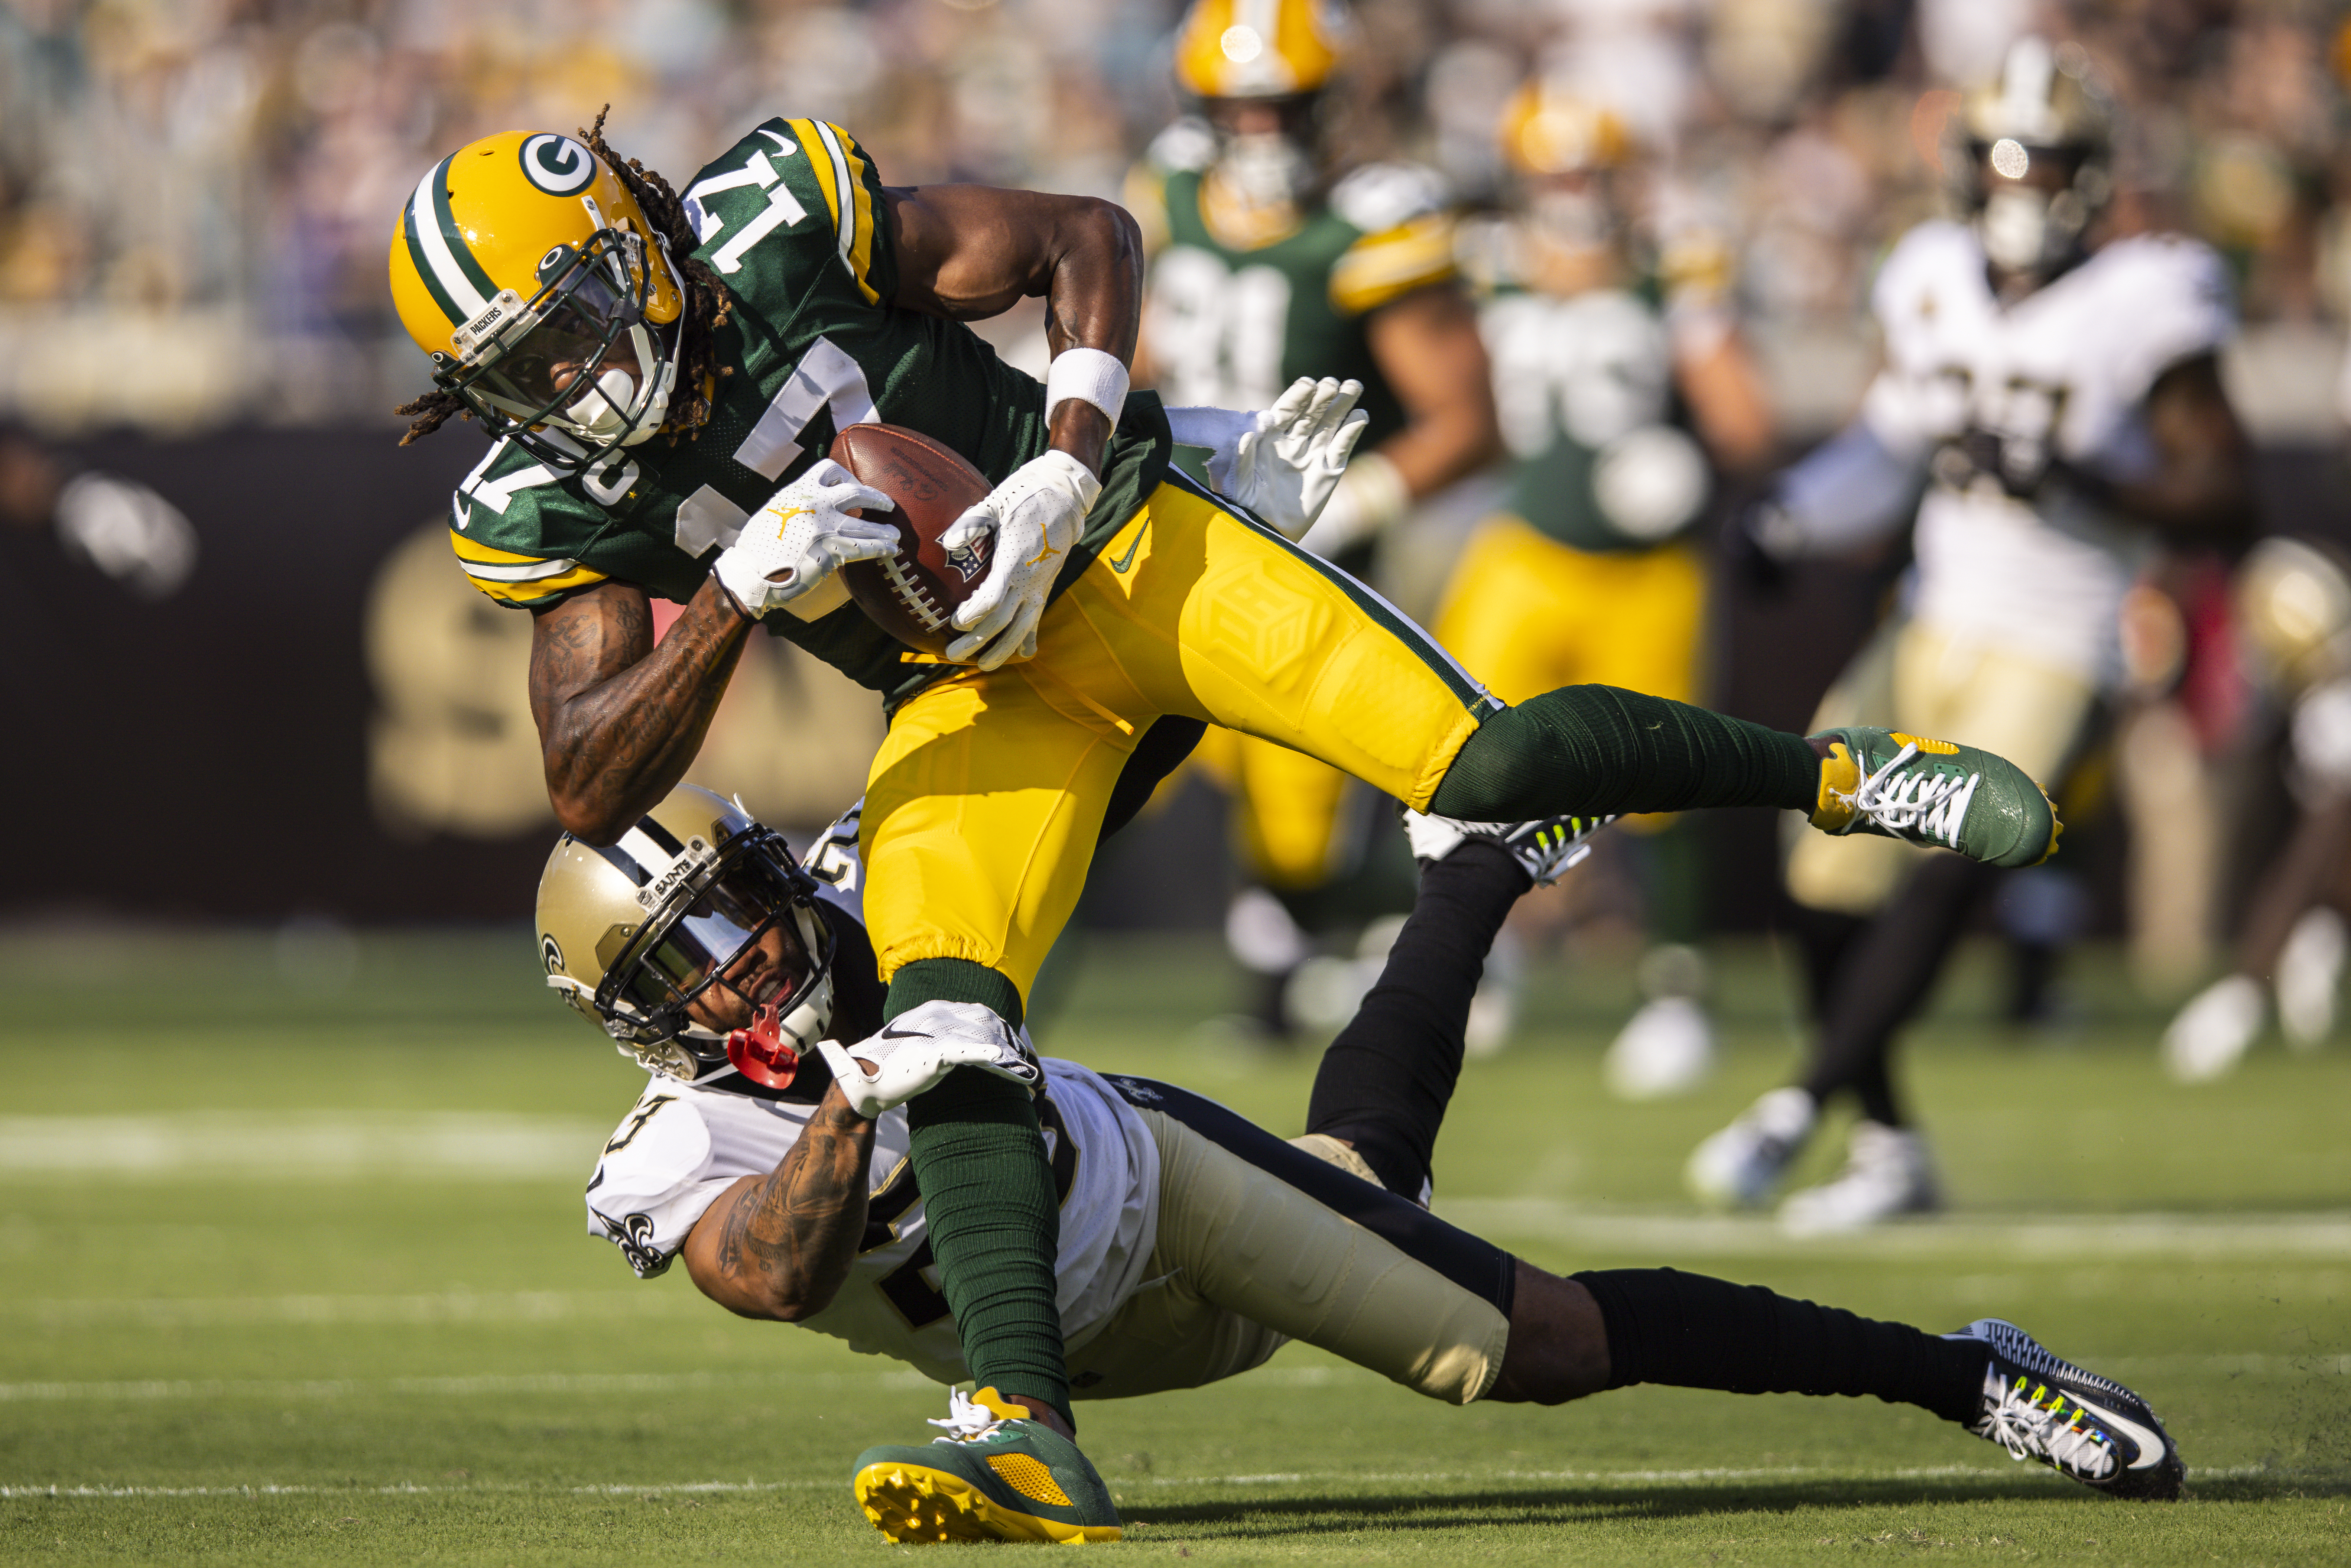 Davante Adams #17 of the Green Bay Packers makes a catch against Marshon Lattimore #23 of the New Orleans Saints during the first half of a game at TIAA Bank Field on September 12, 2021 in Jacksonville, Florida.